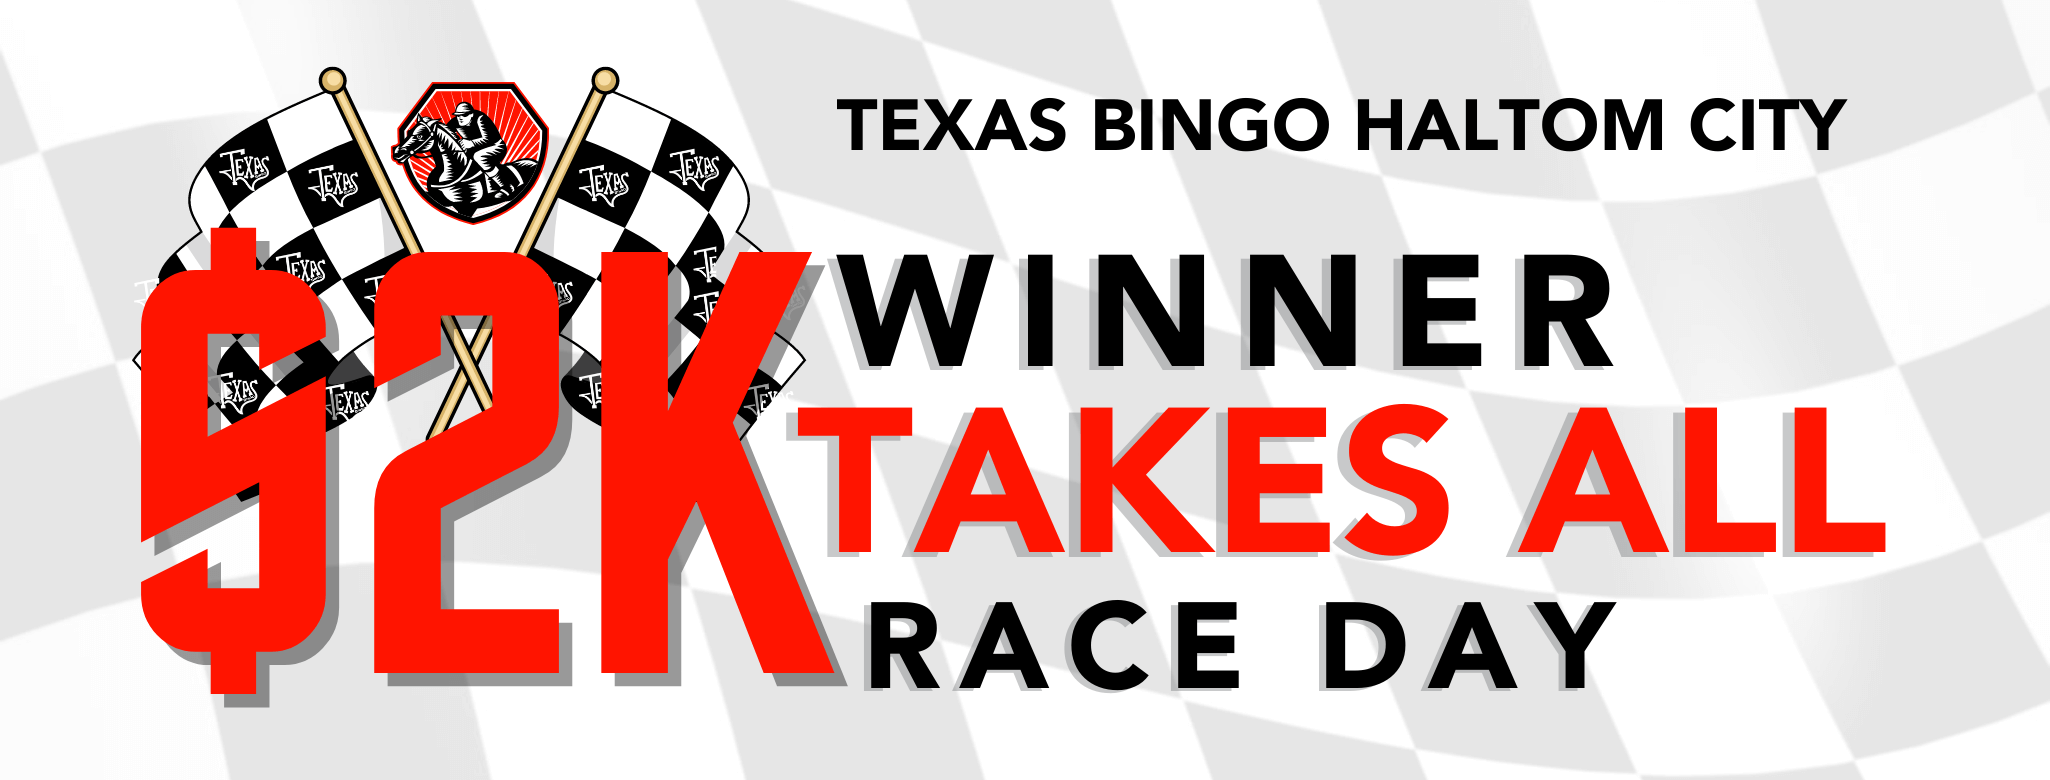 $2K Winner Takes All Race Day